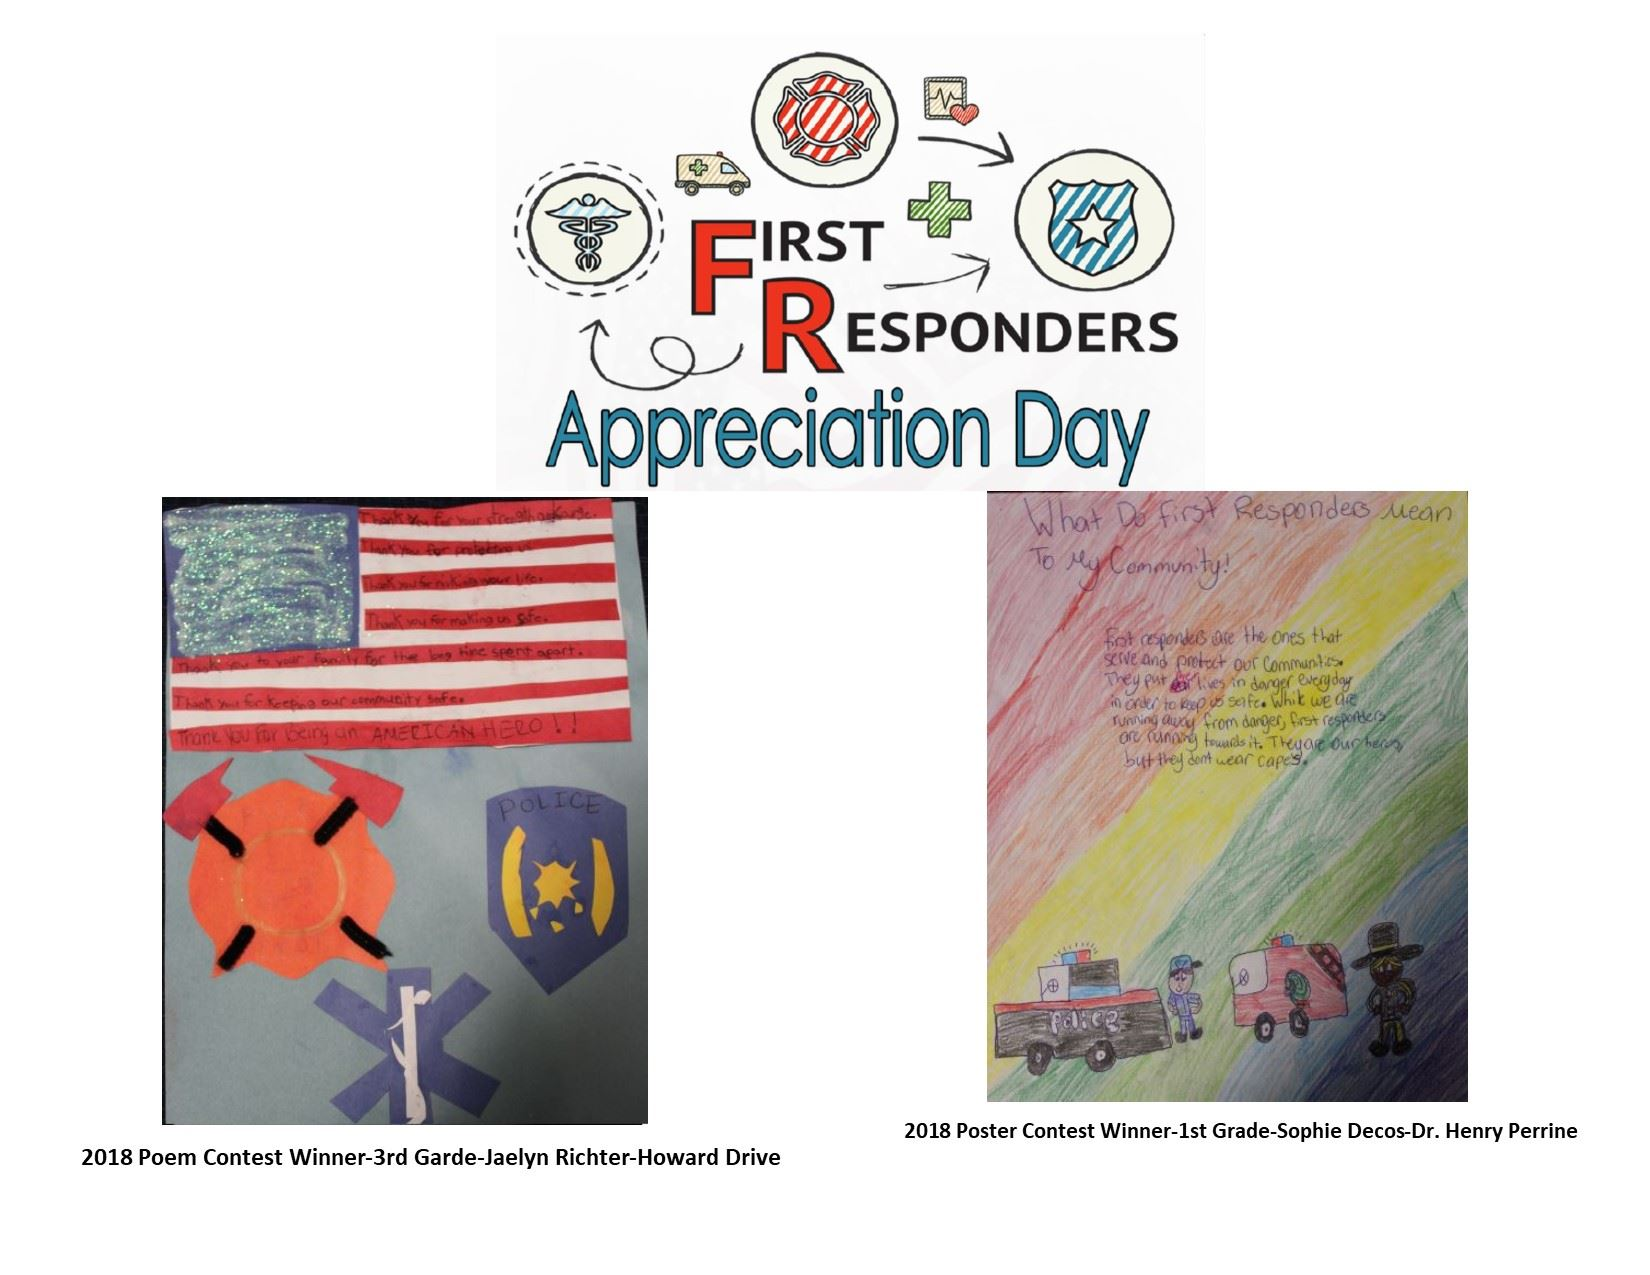 1st Responders Poem and Poster Contest